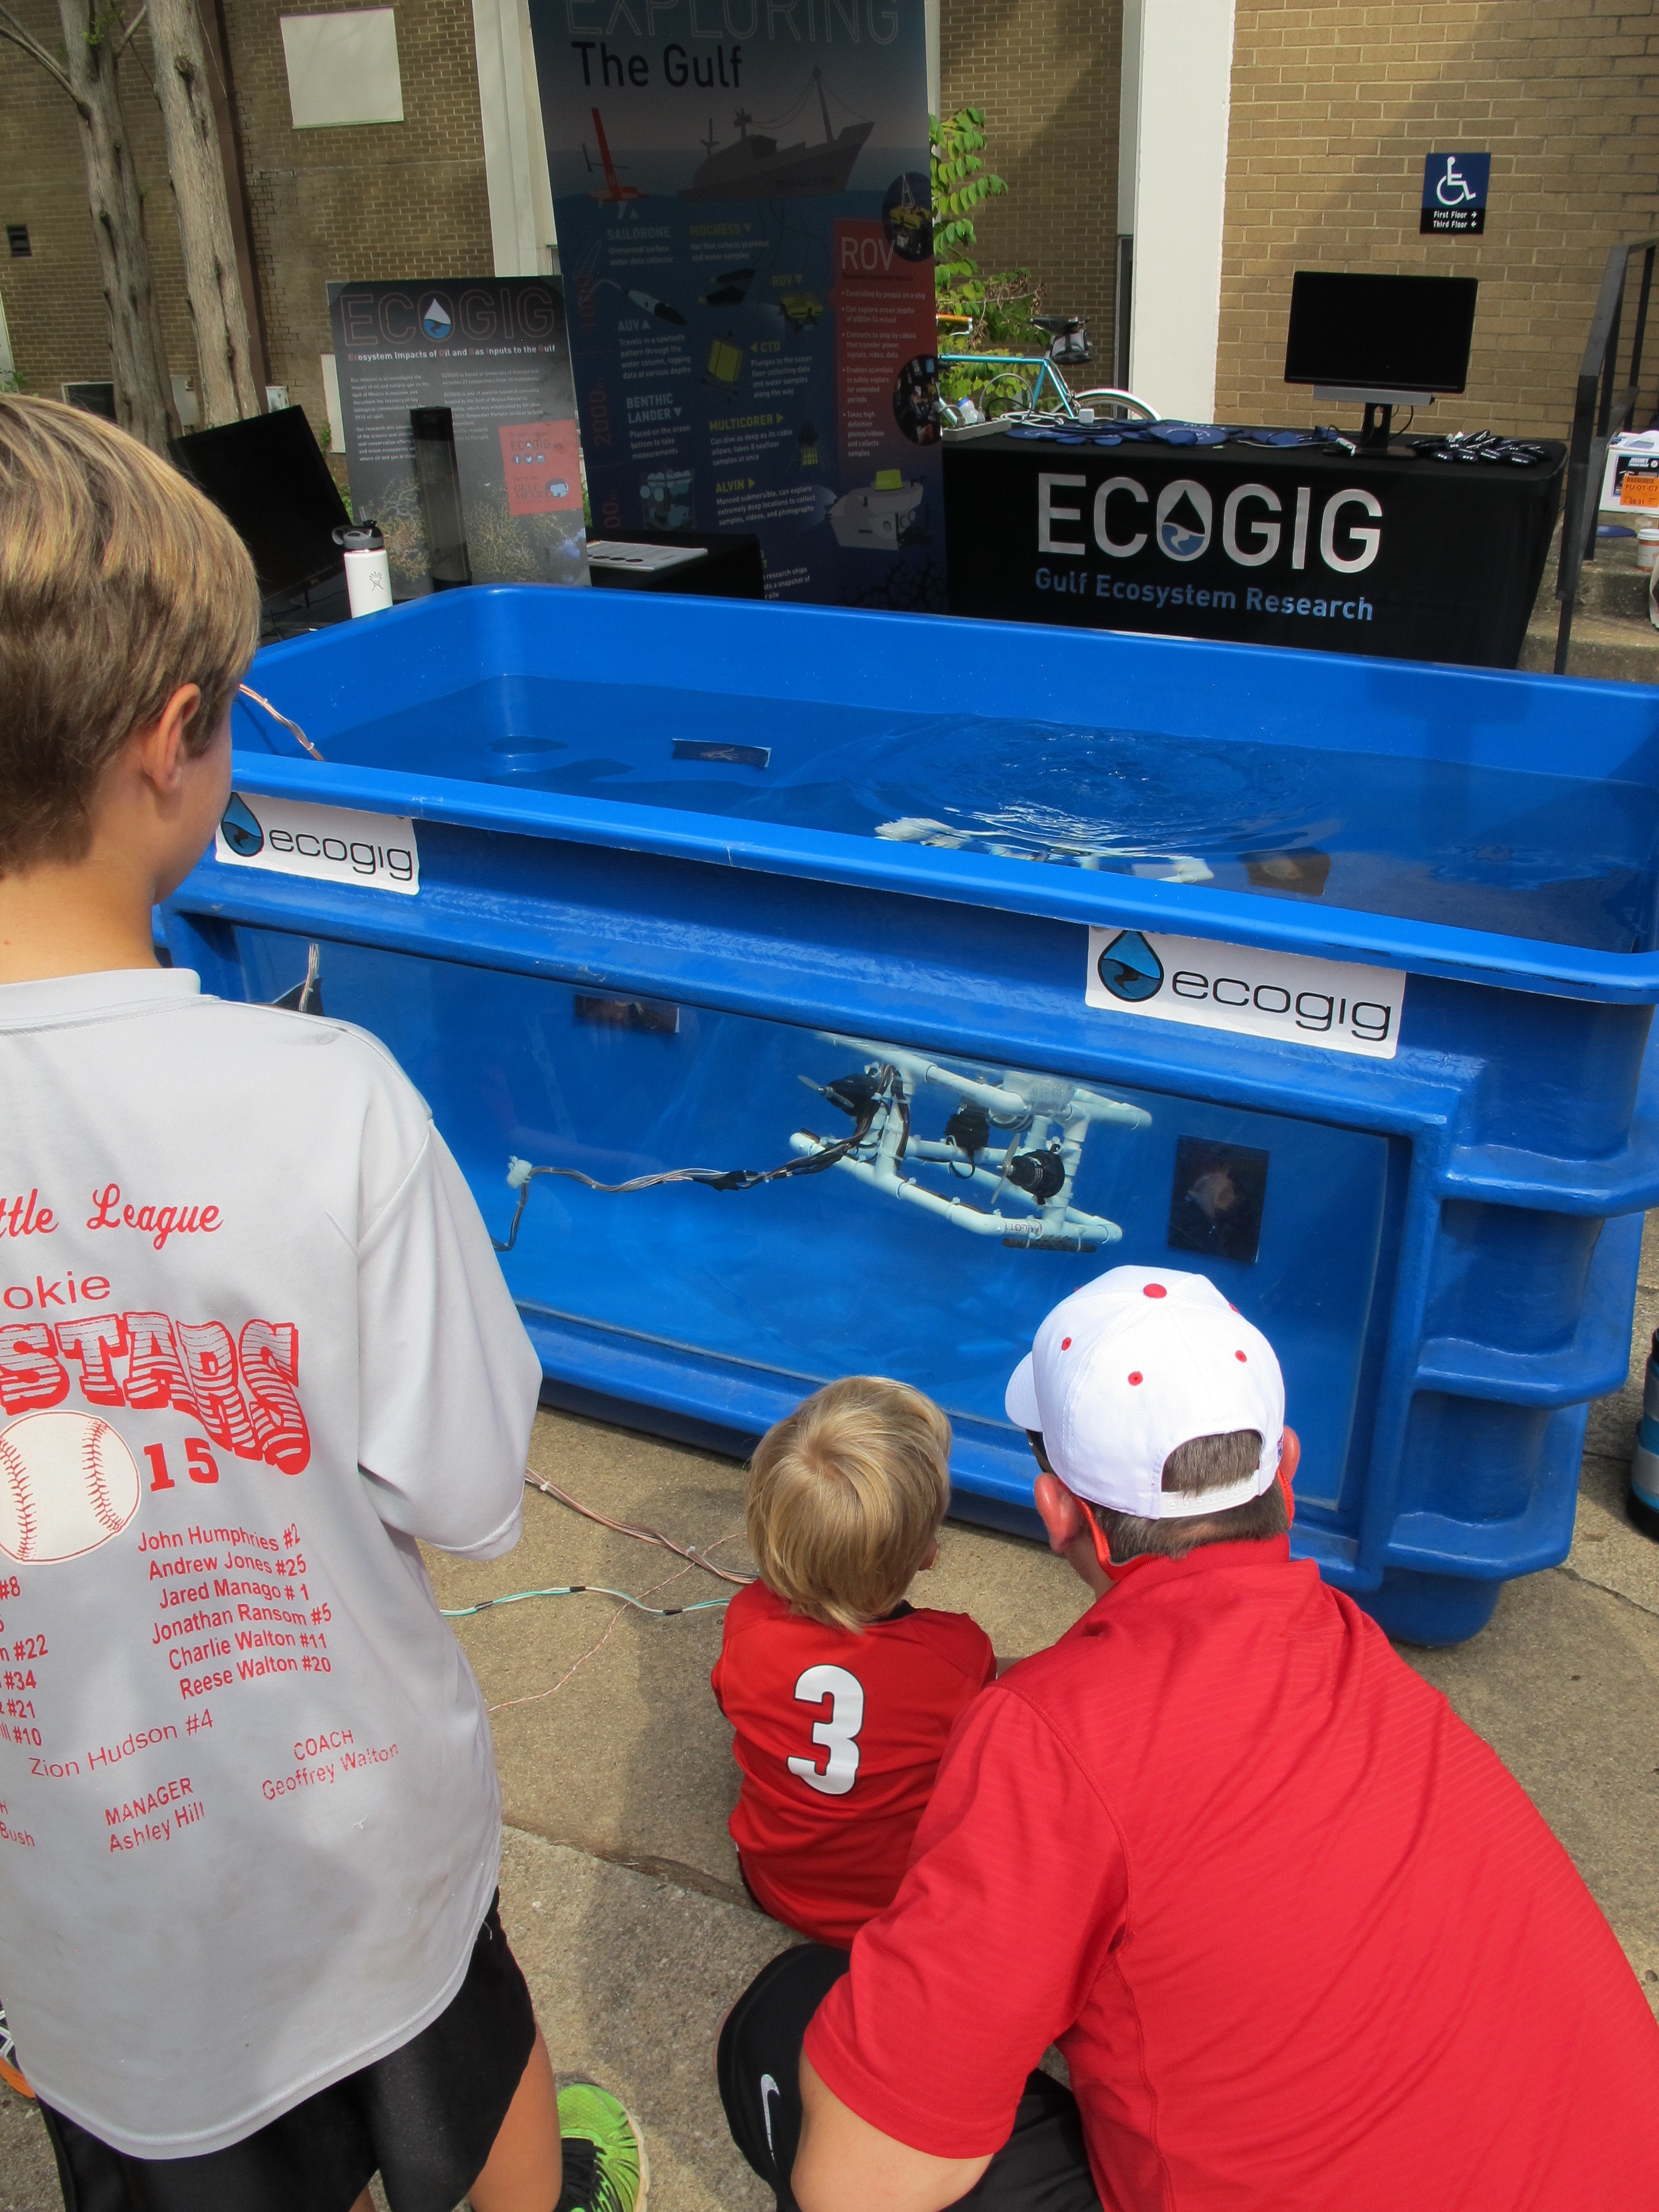 <div style='color:#000000;'><br /><br /><h2>2015 UGA football home game. Driving a ROV is so much fun!</h2>(C)&nbsp;ECOGIG</div>